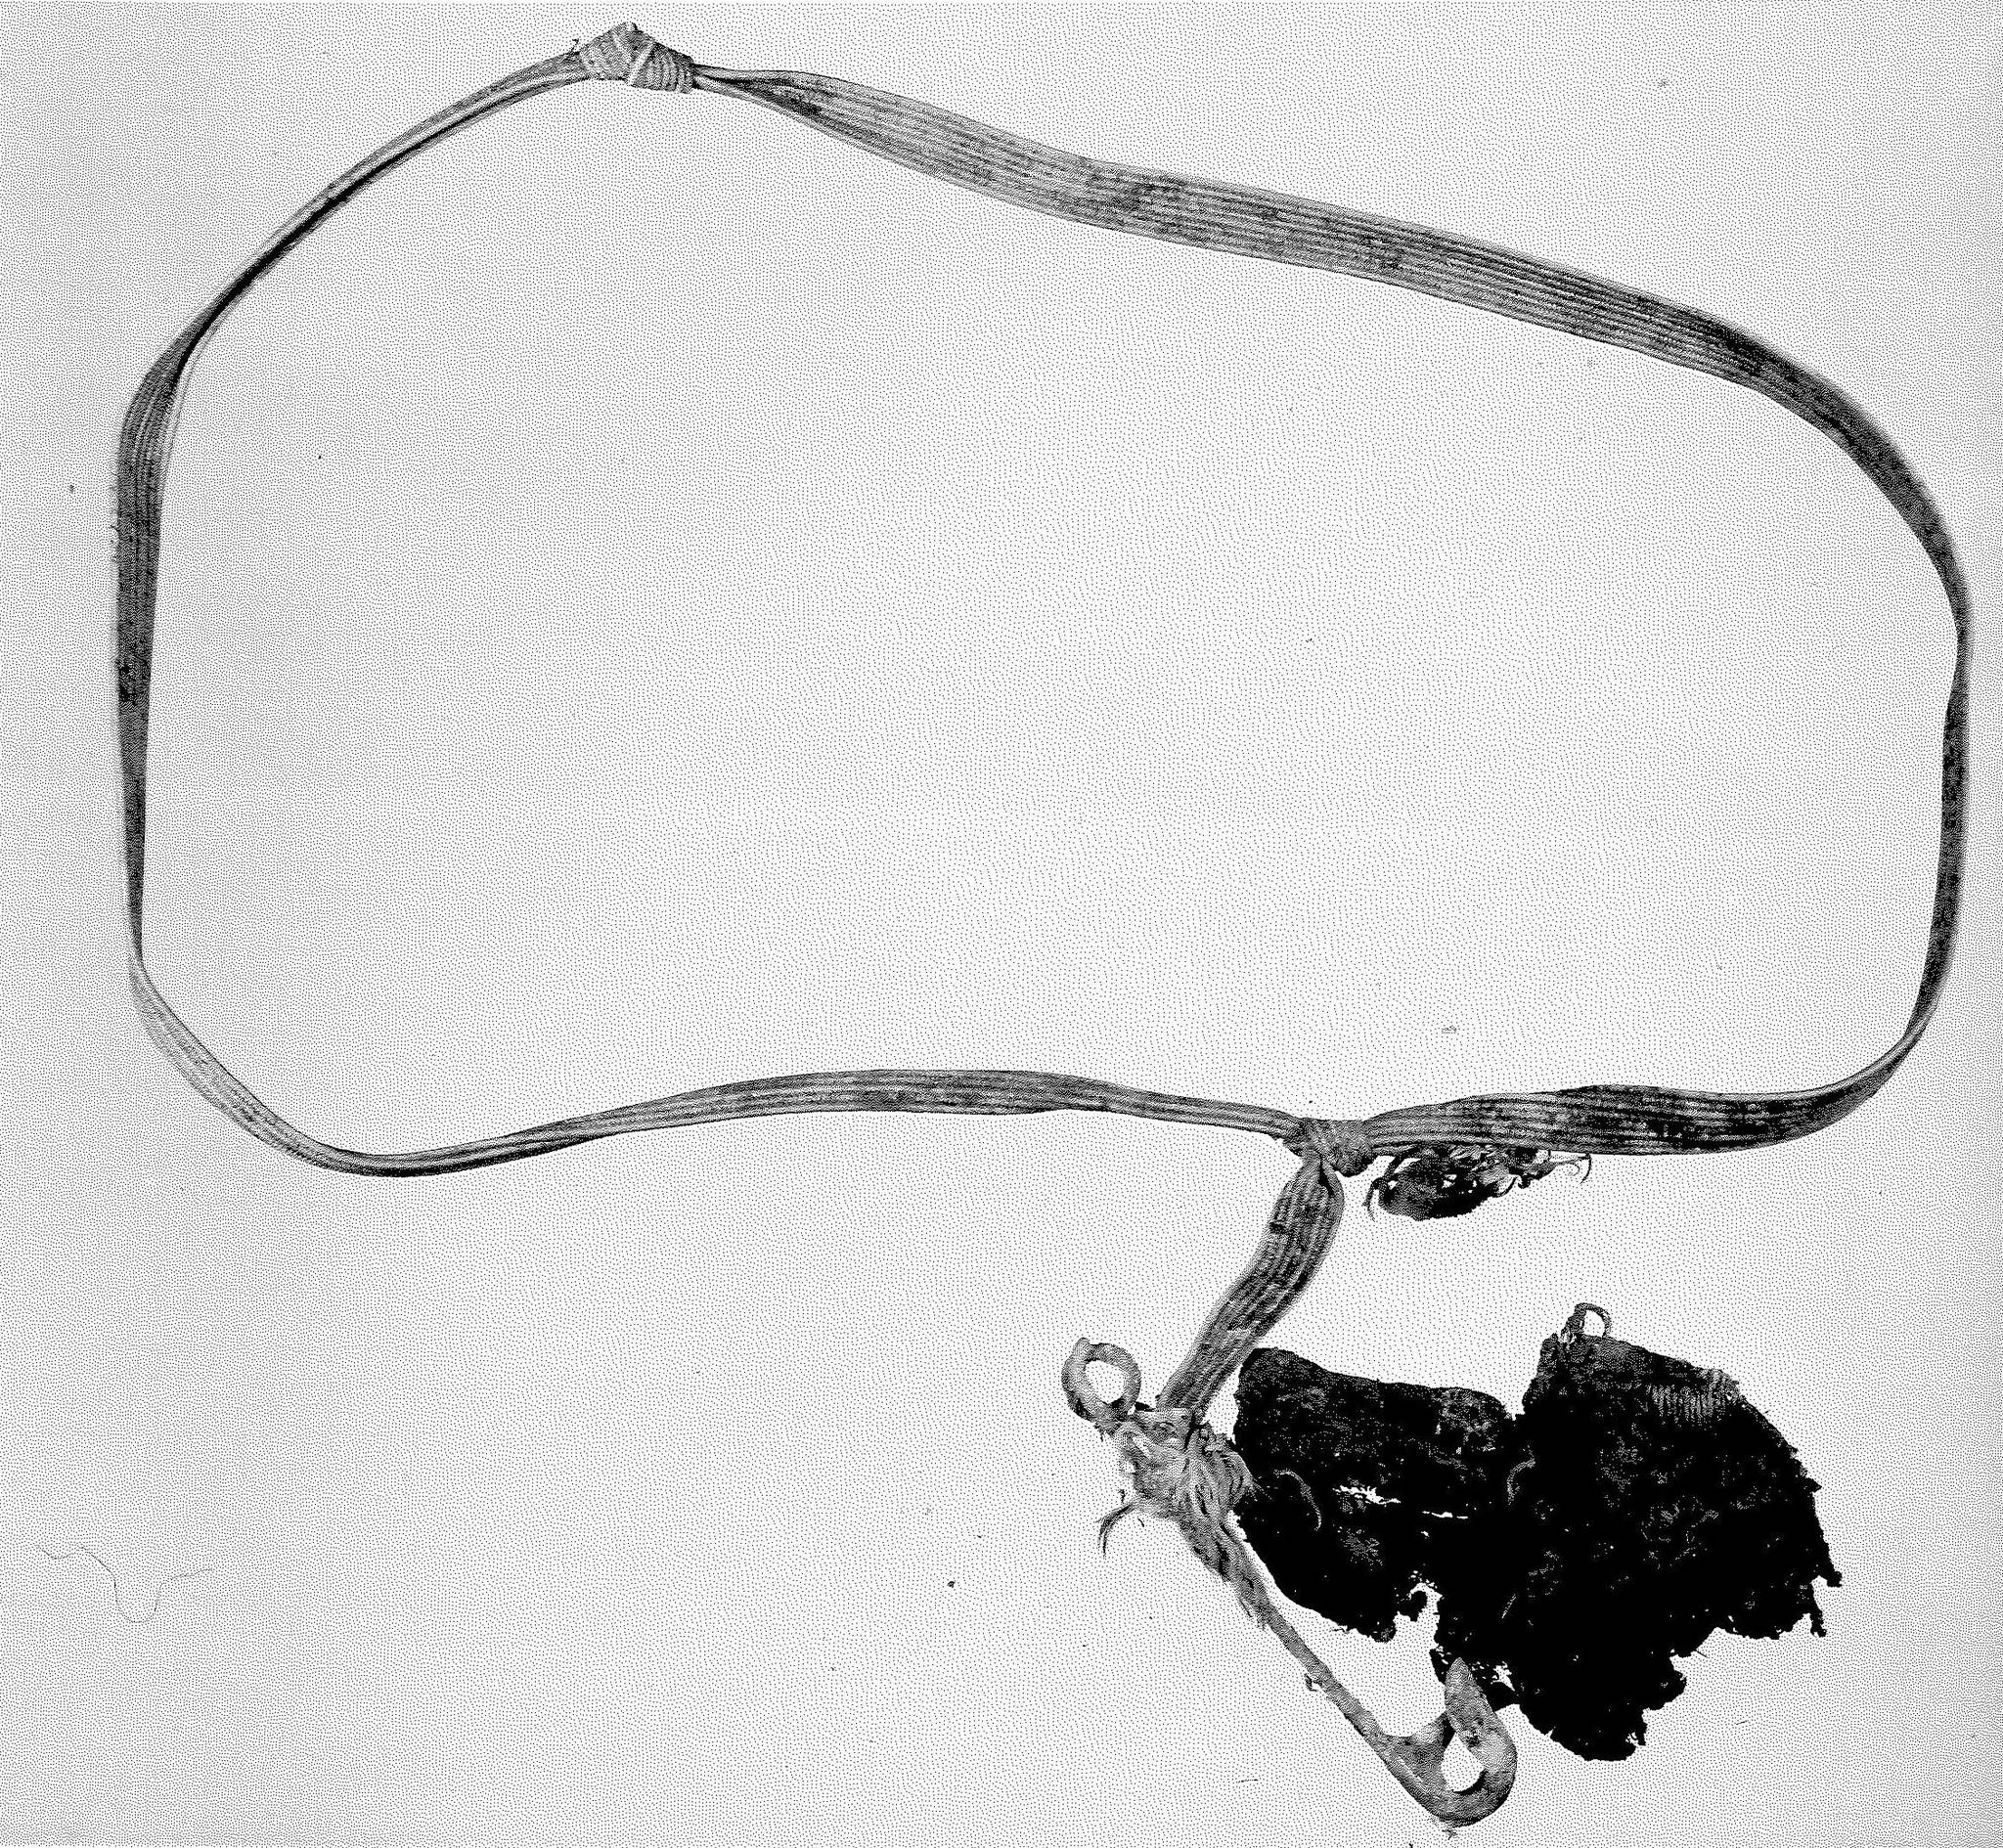 A belt, among other evidence, found at the Stanley Park crime scene in 1953. (Vancouver Police Department)